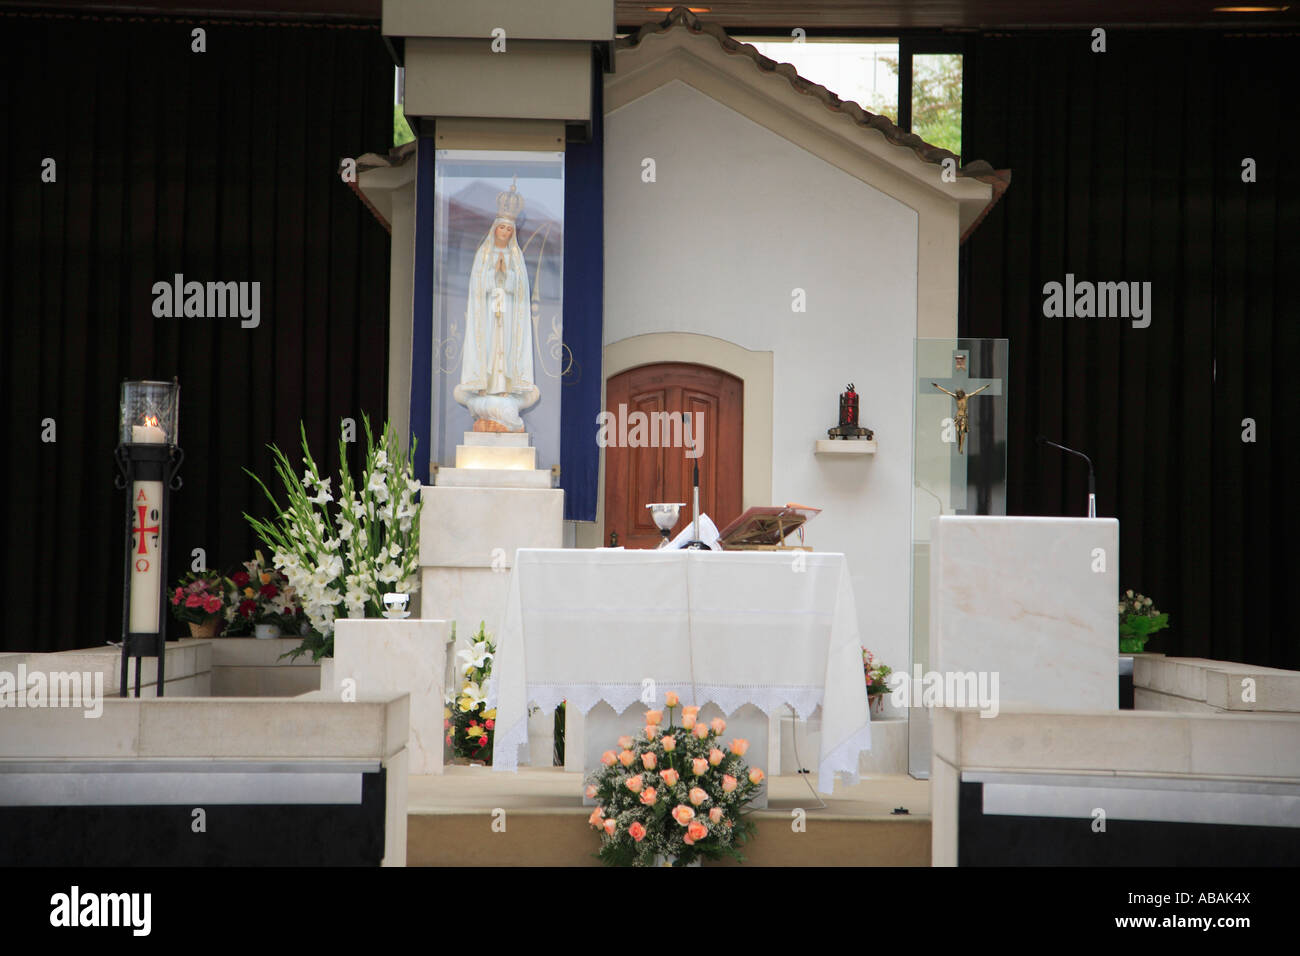 Portugal Fatima Chapel of the Apparitions Stock Photo - Alamy